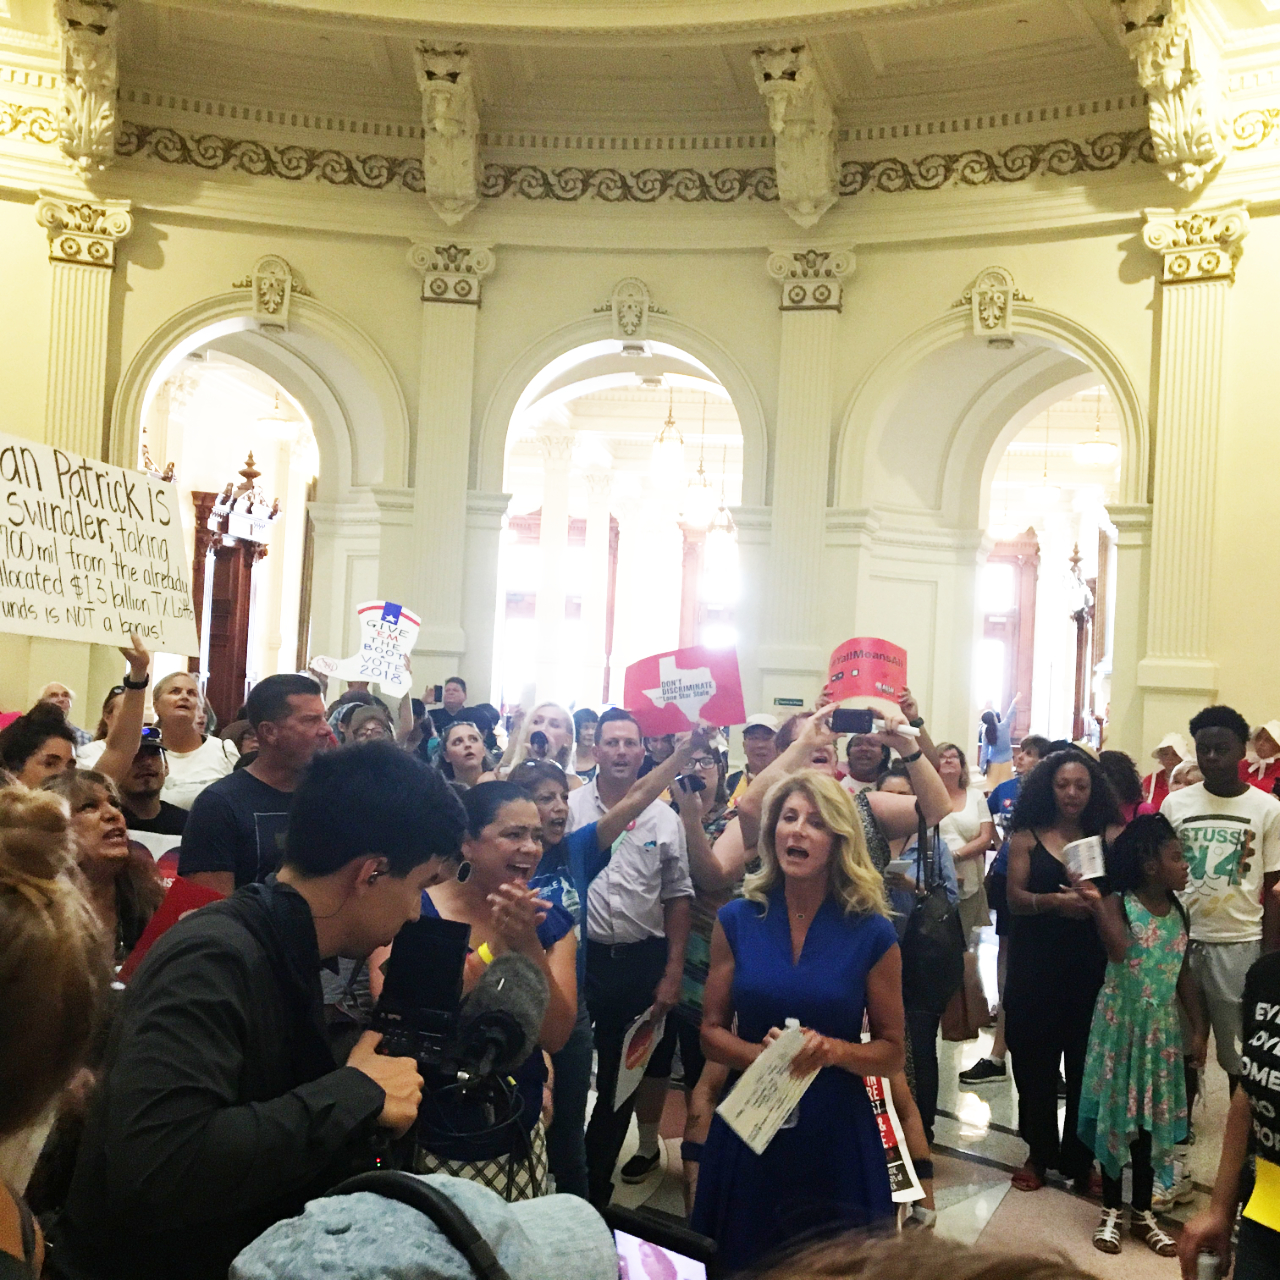 Wendy Davis leads us in protest chants in the Texas Rotunda